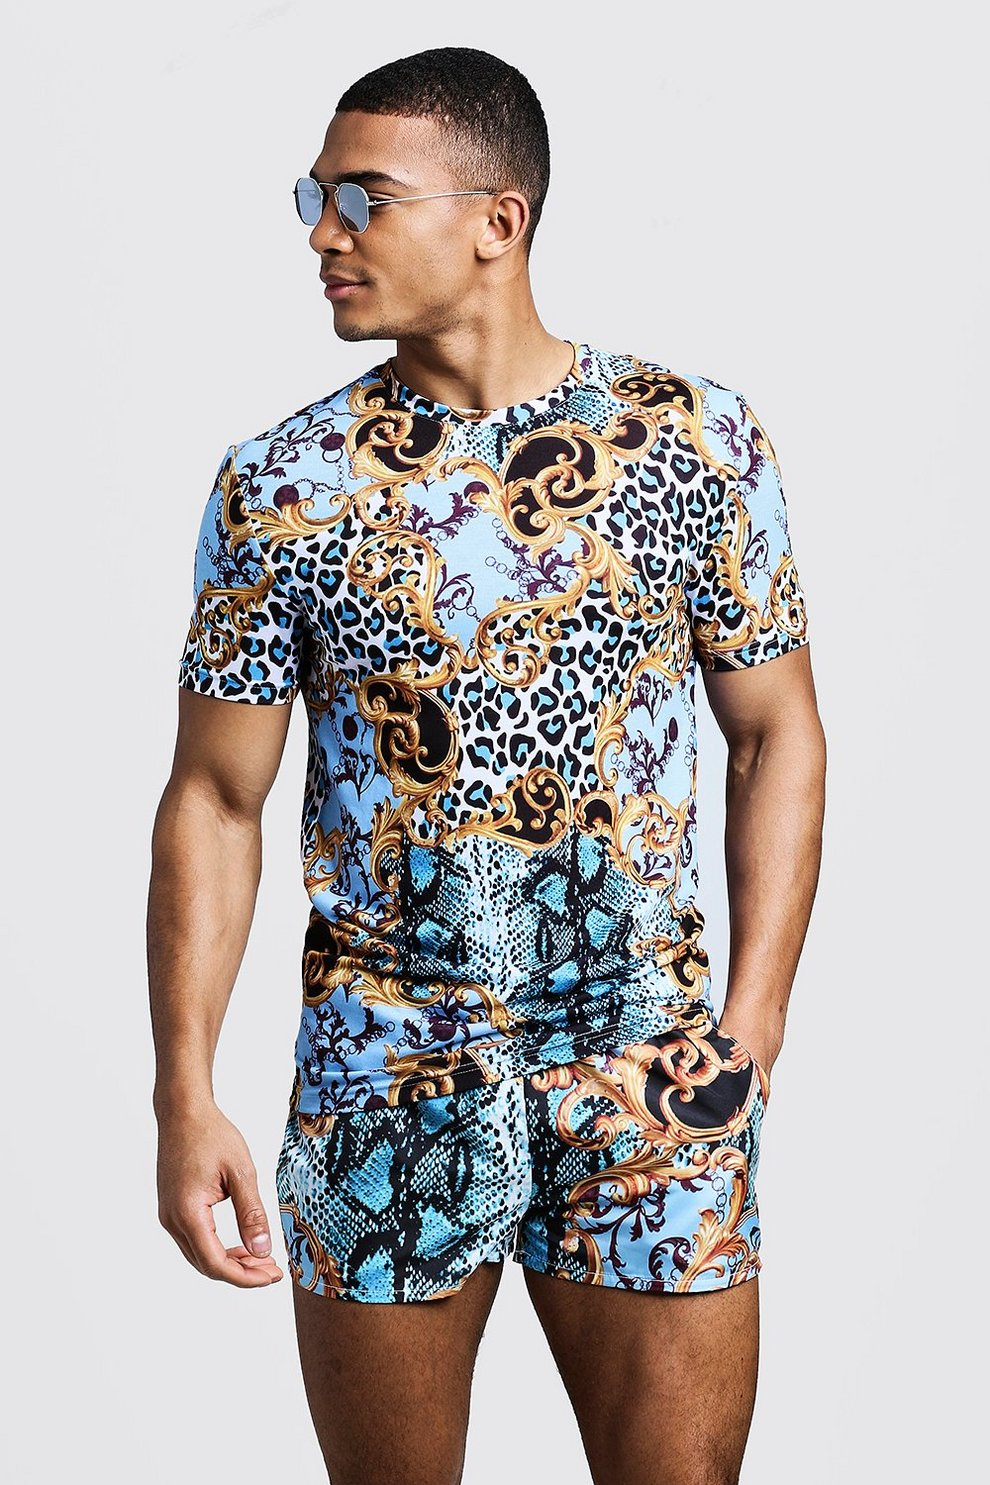 64b93d101 Mens Blue Baroque & Animal Print Muscle Fit T-Shirt & Swim Short. Hover to  zoom. Close video